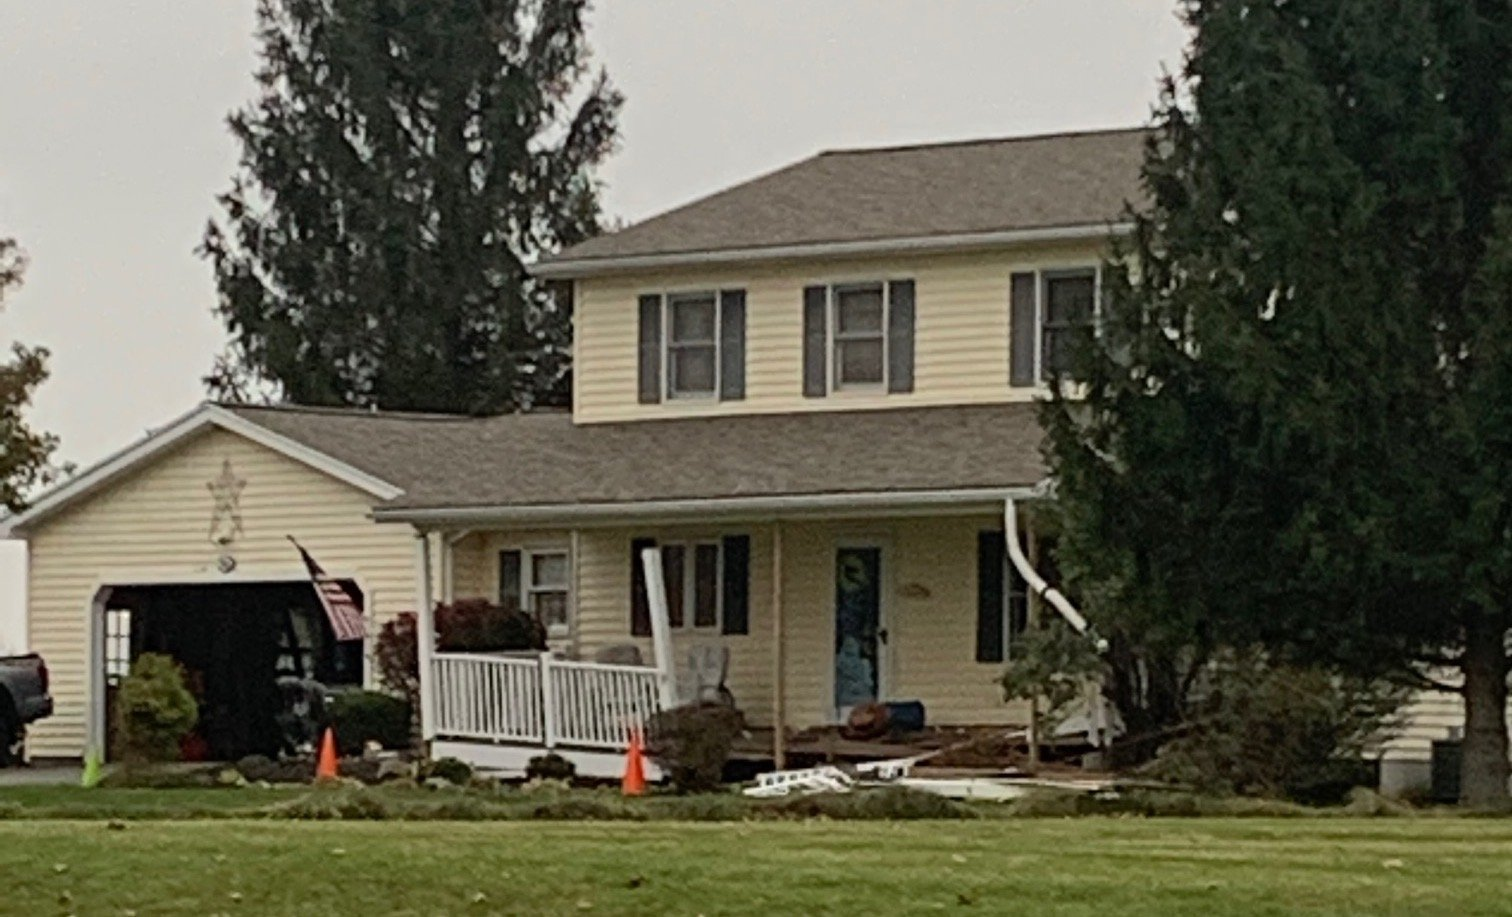 Hopewell home damaged after drunk driver crashes into it